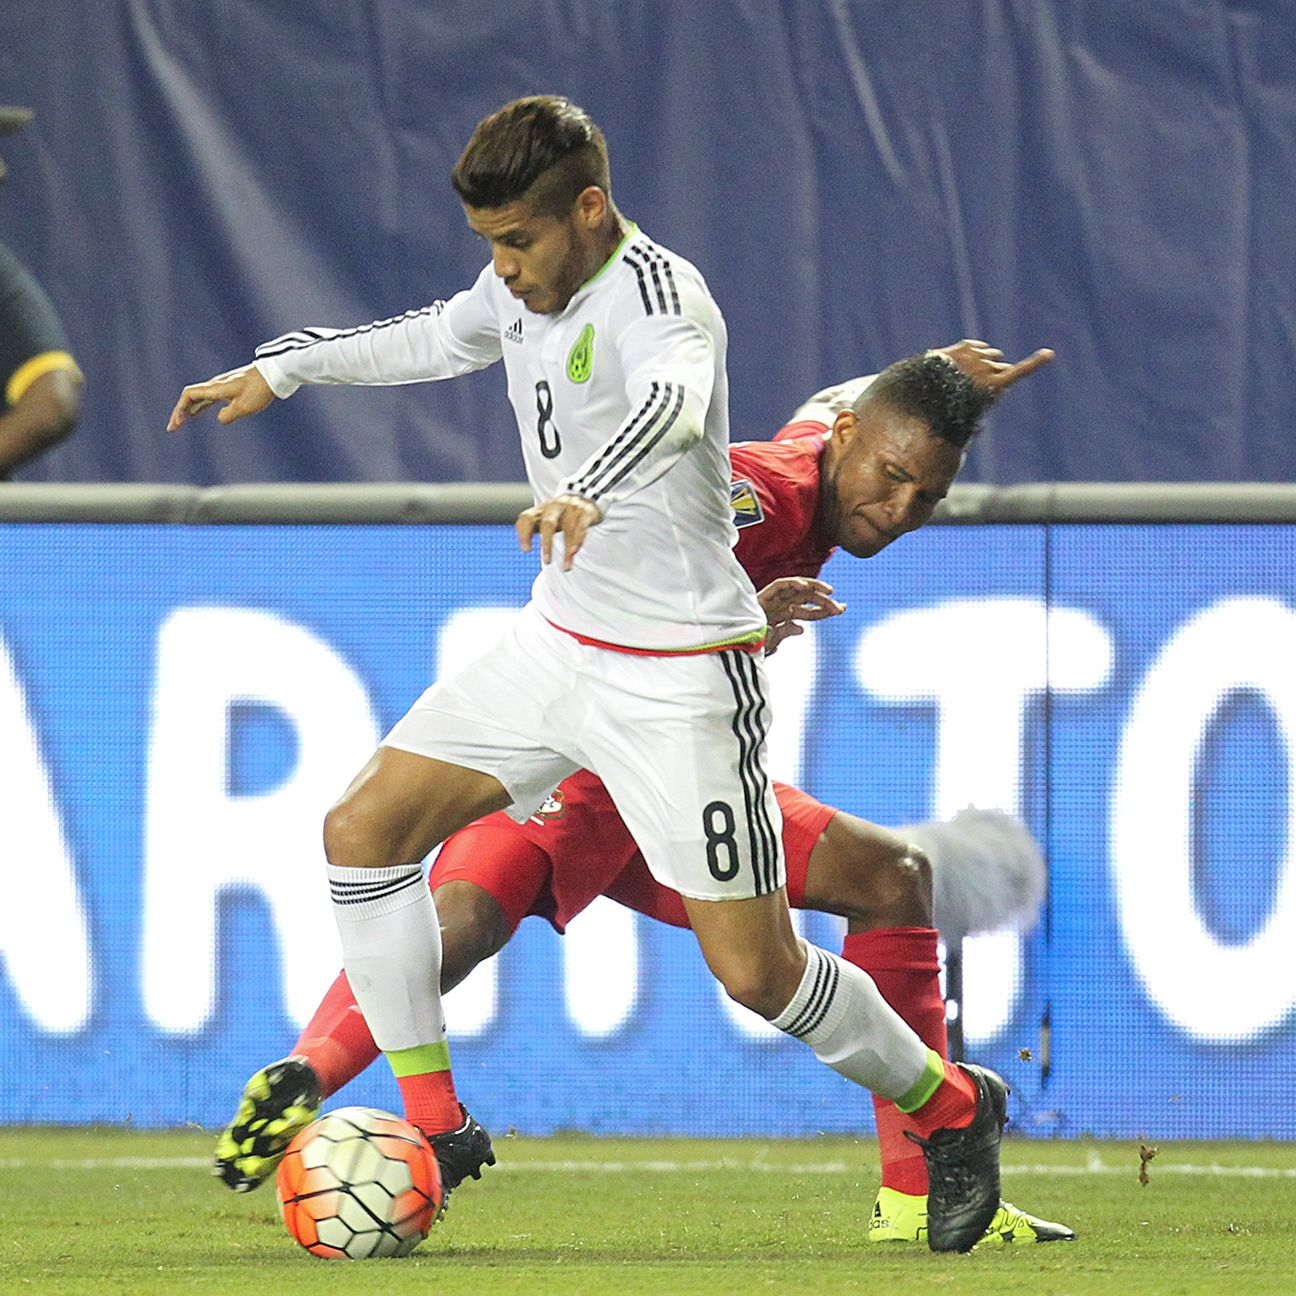 On a rough night for Mexico, Jonathan dos Santos stood out in midfield for </i>El Tri</i>.